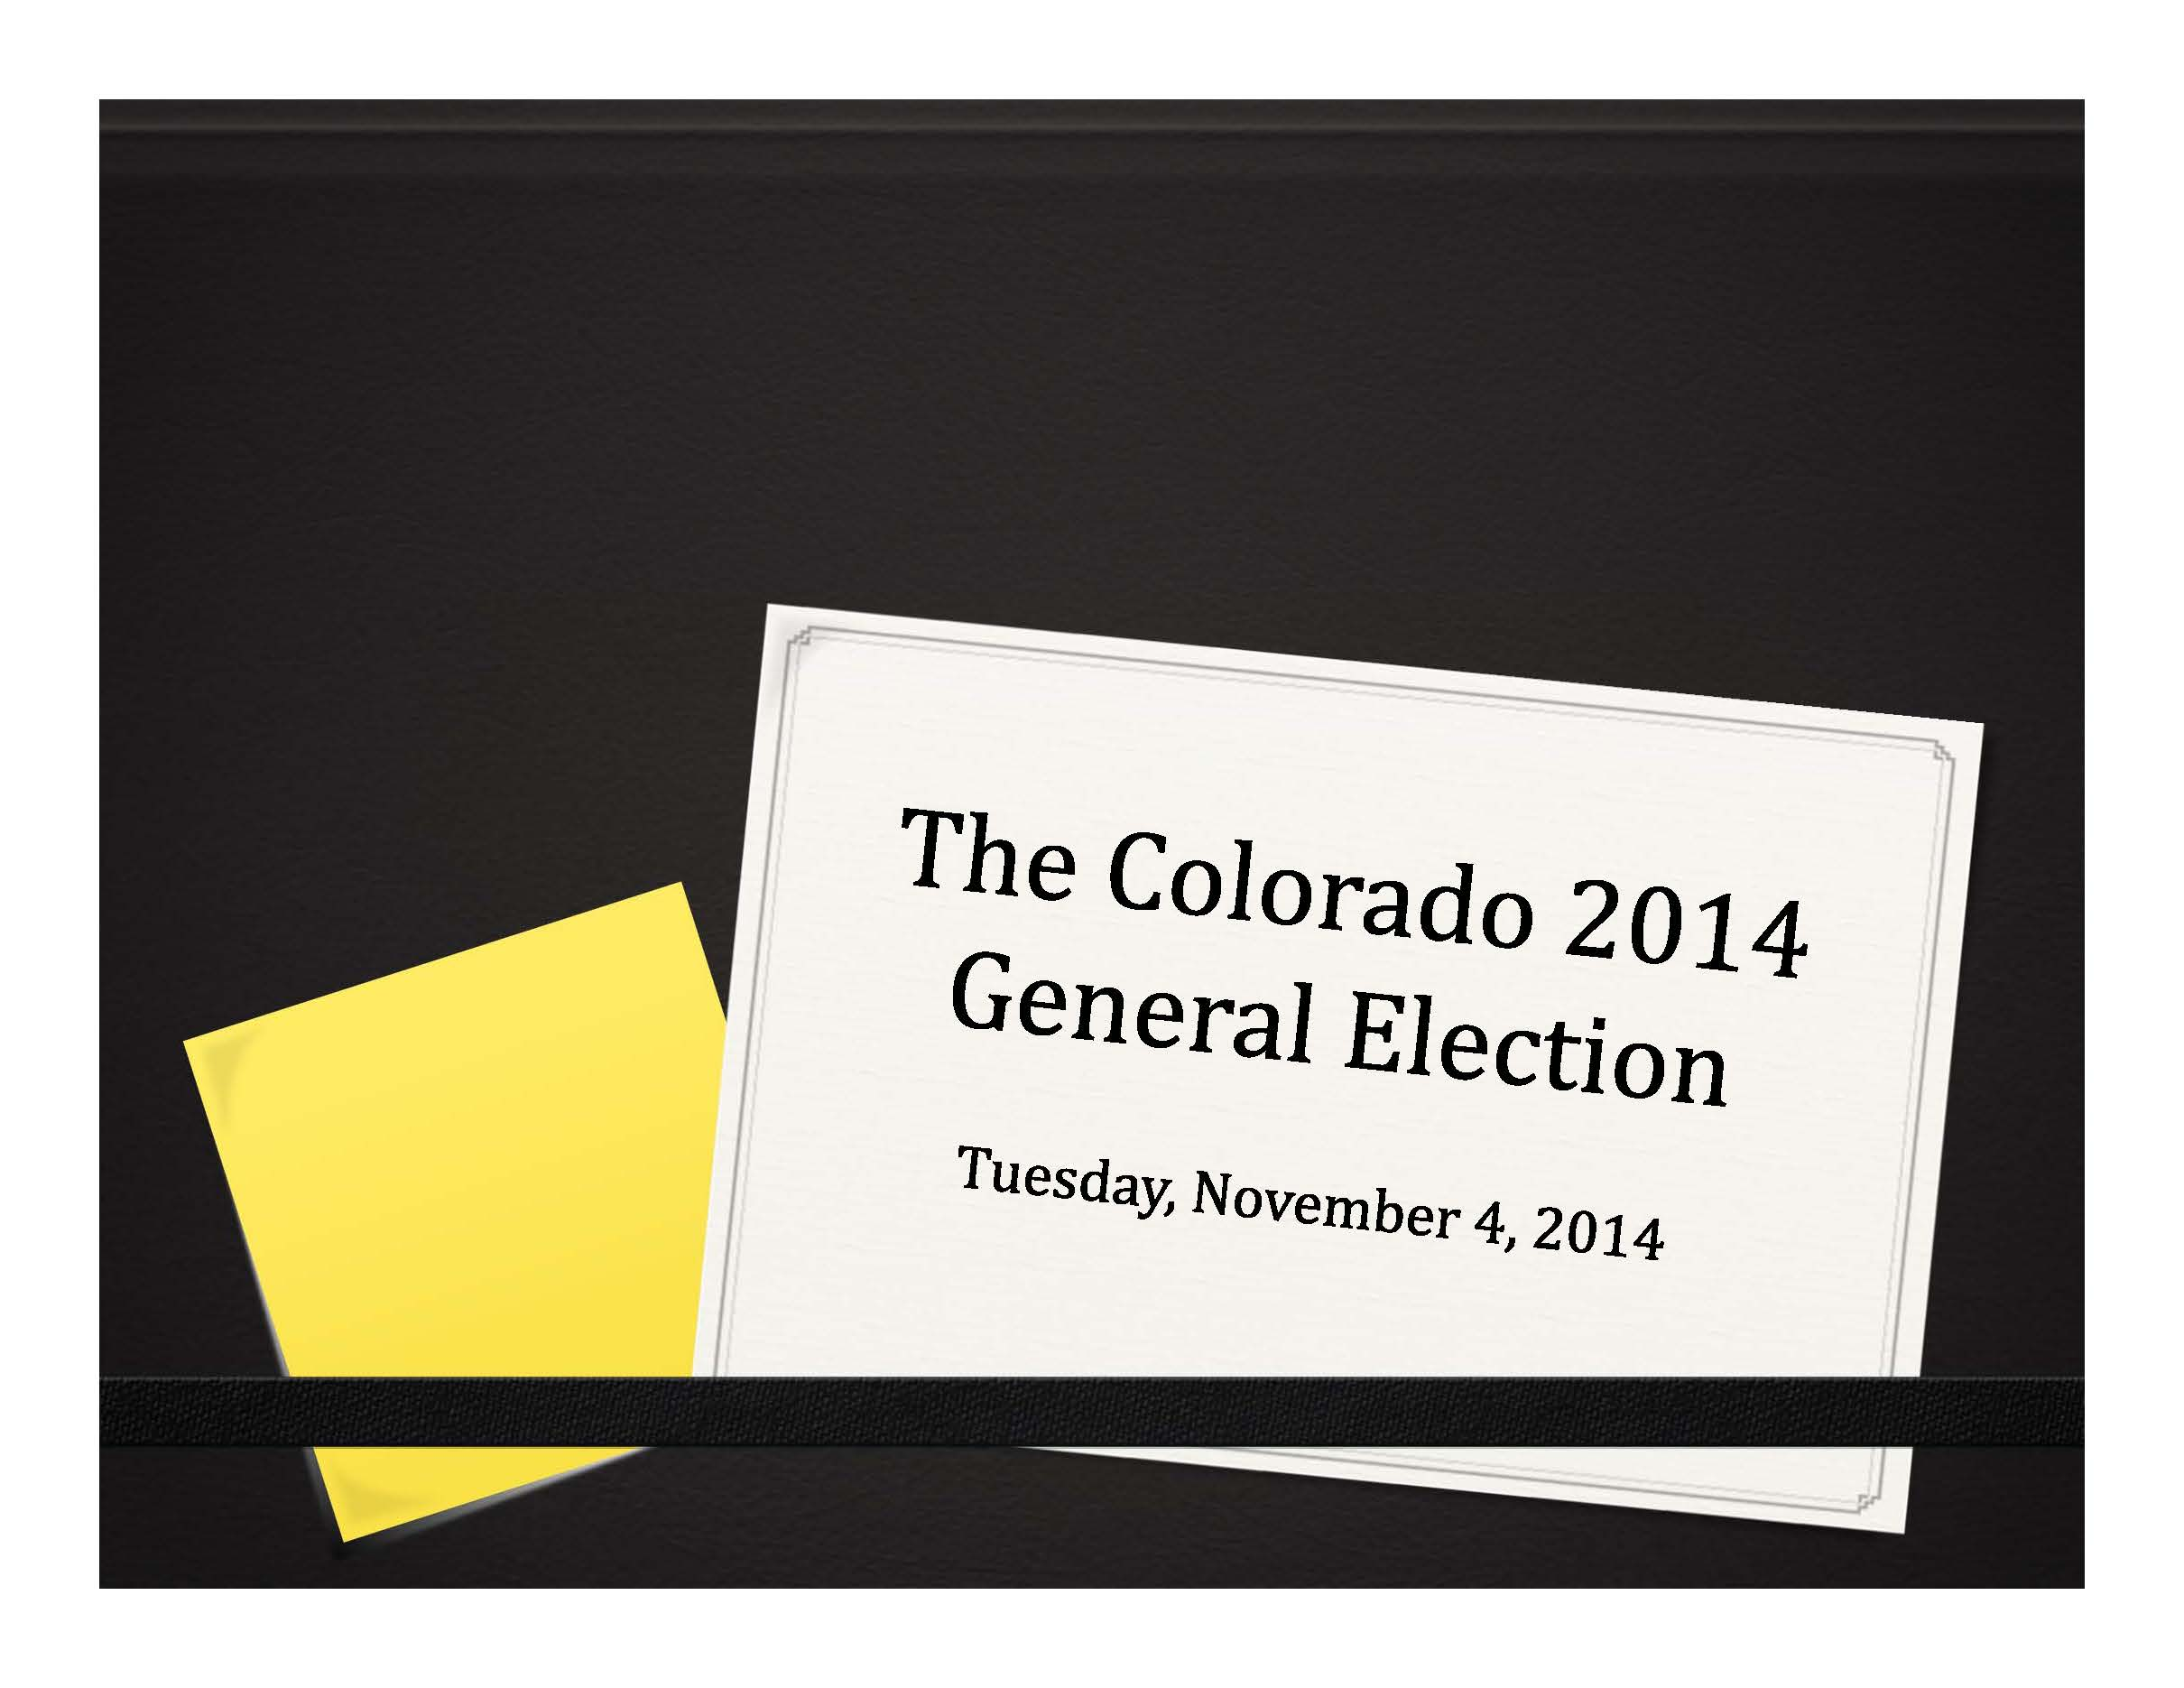 The Colorado 2014 General Election_Page_1.jpg